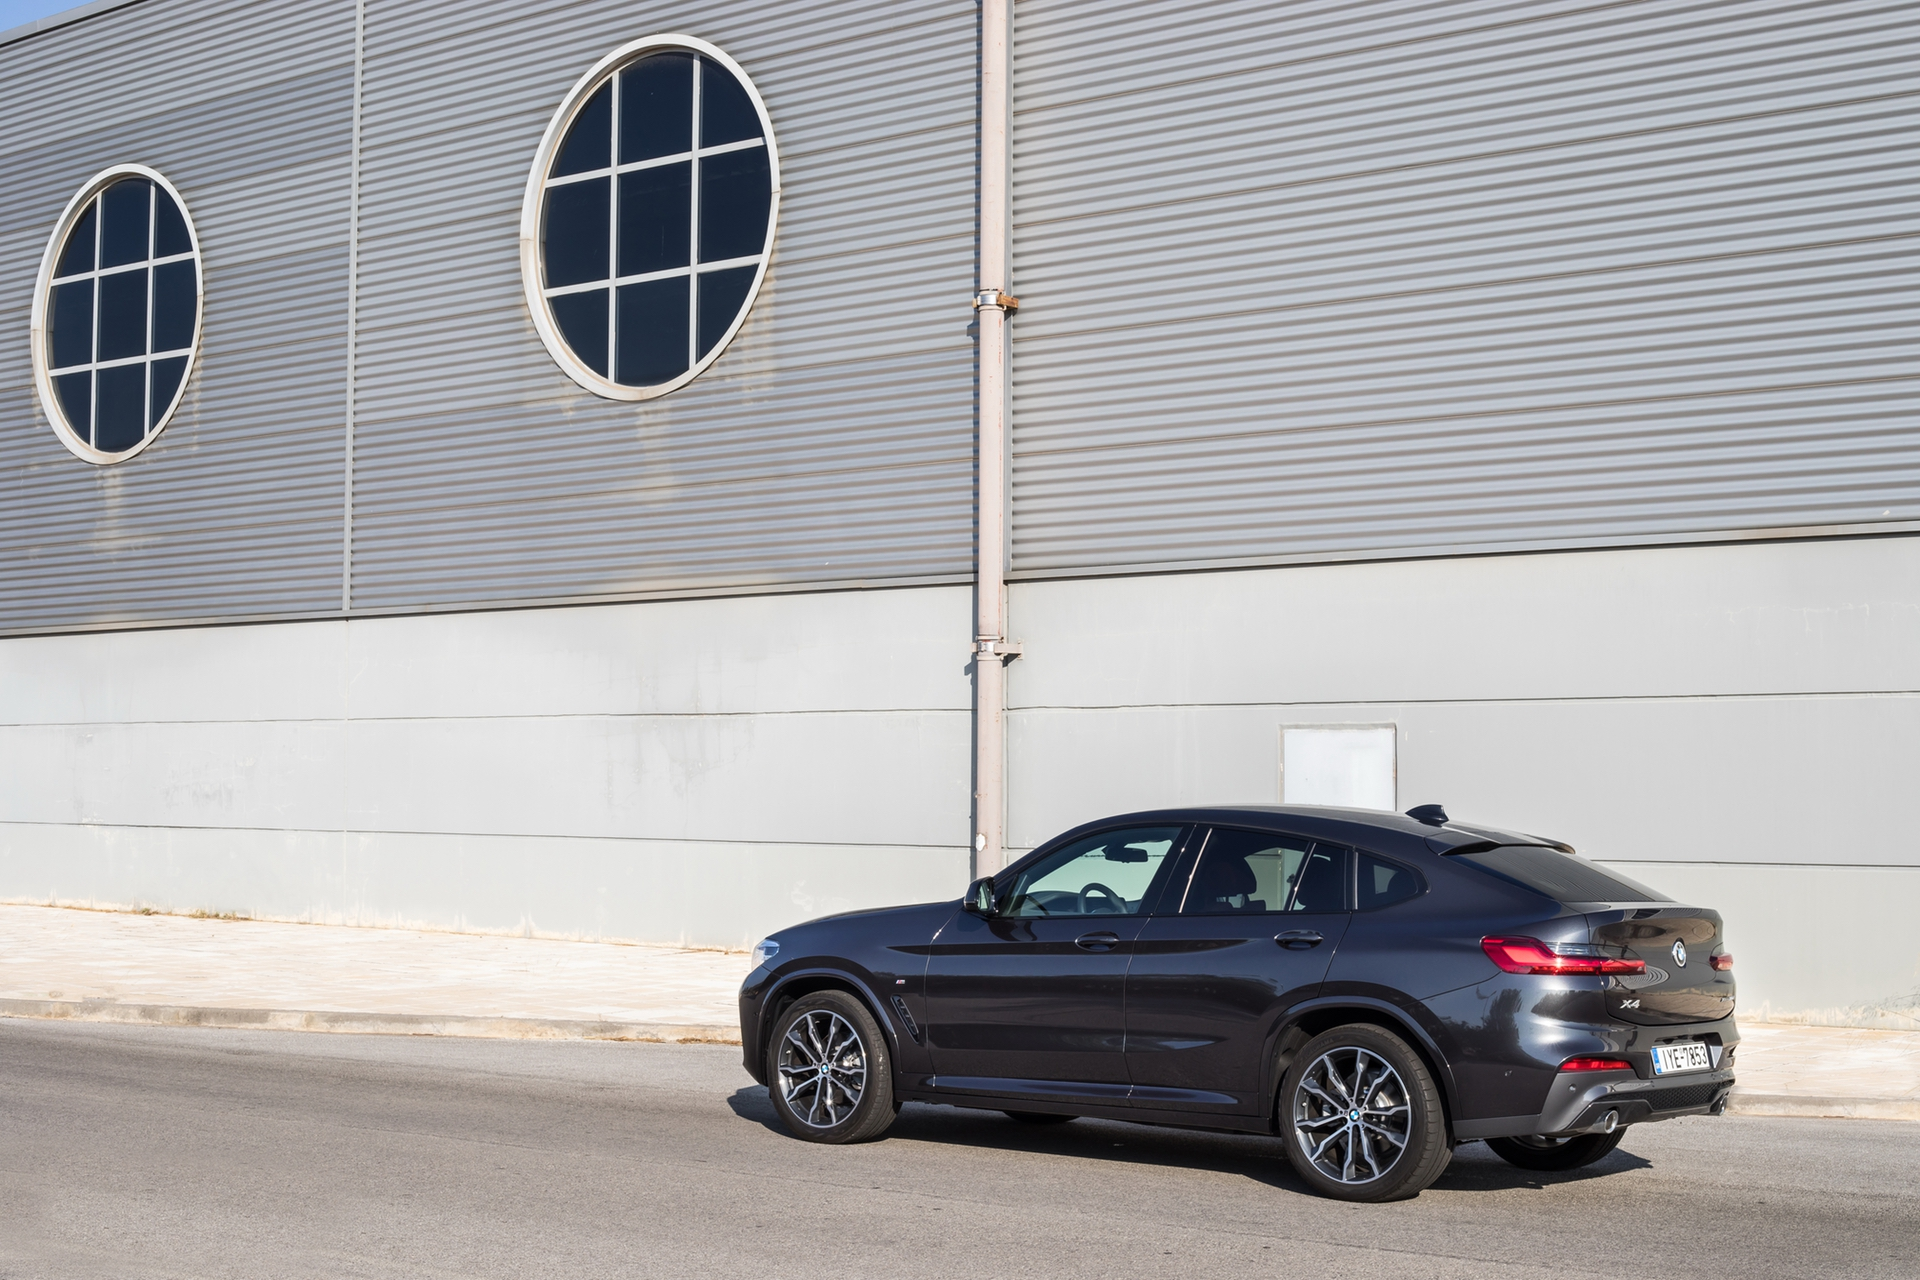 BMW_X4_greek_presskit_0057